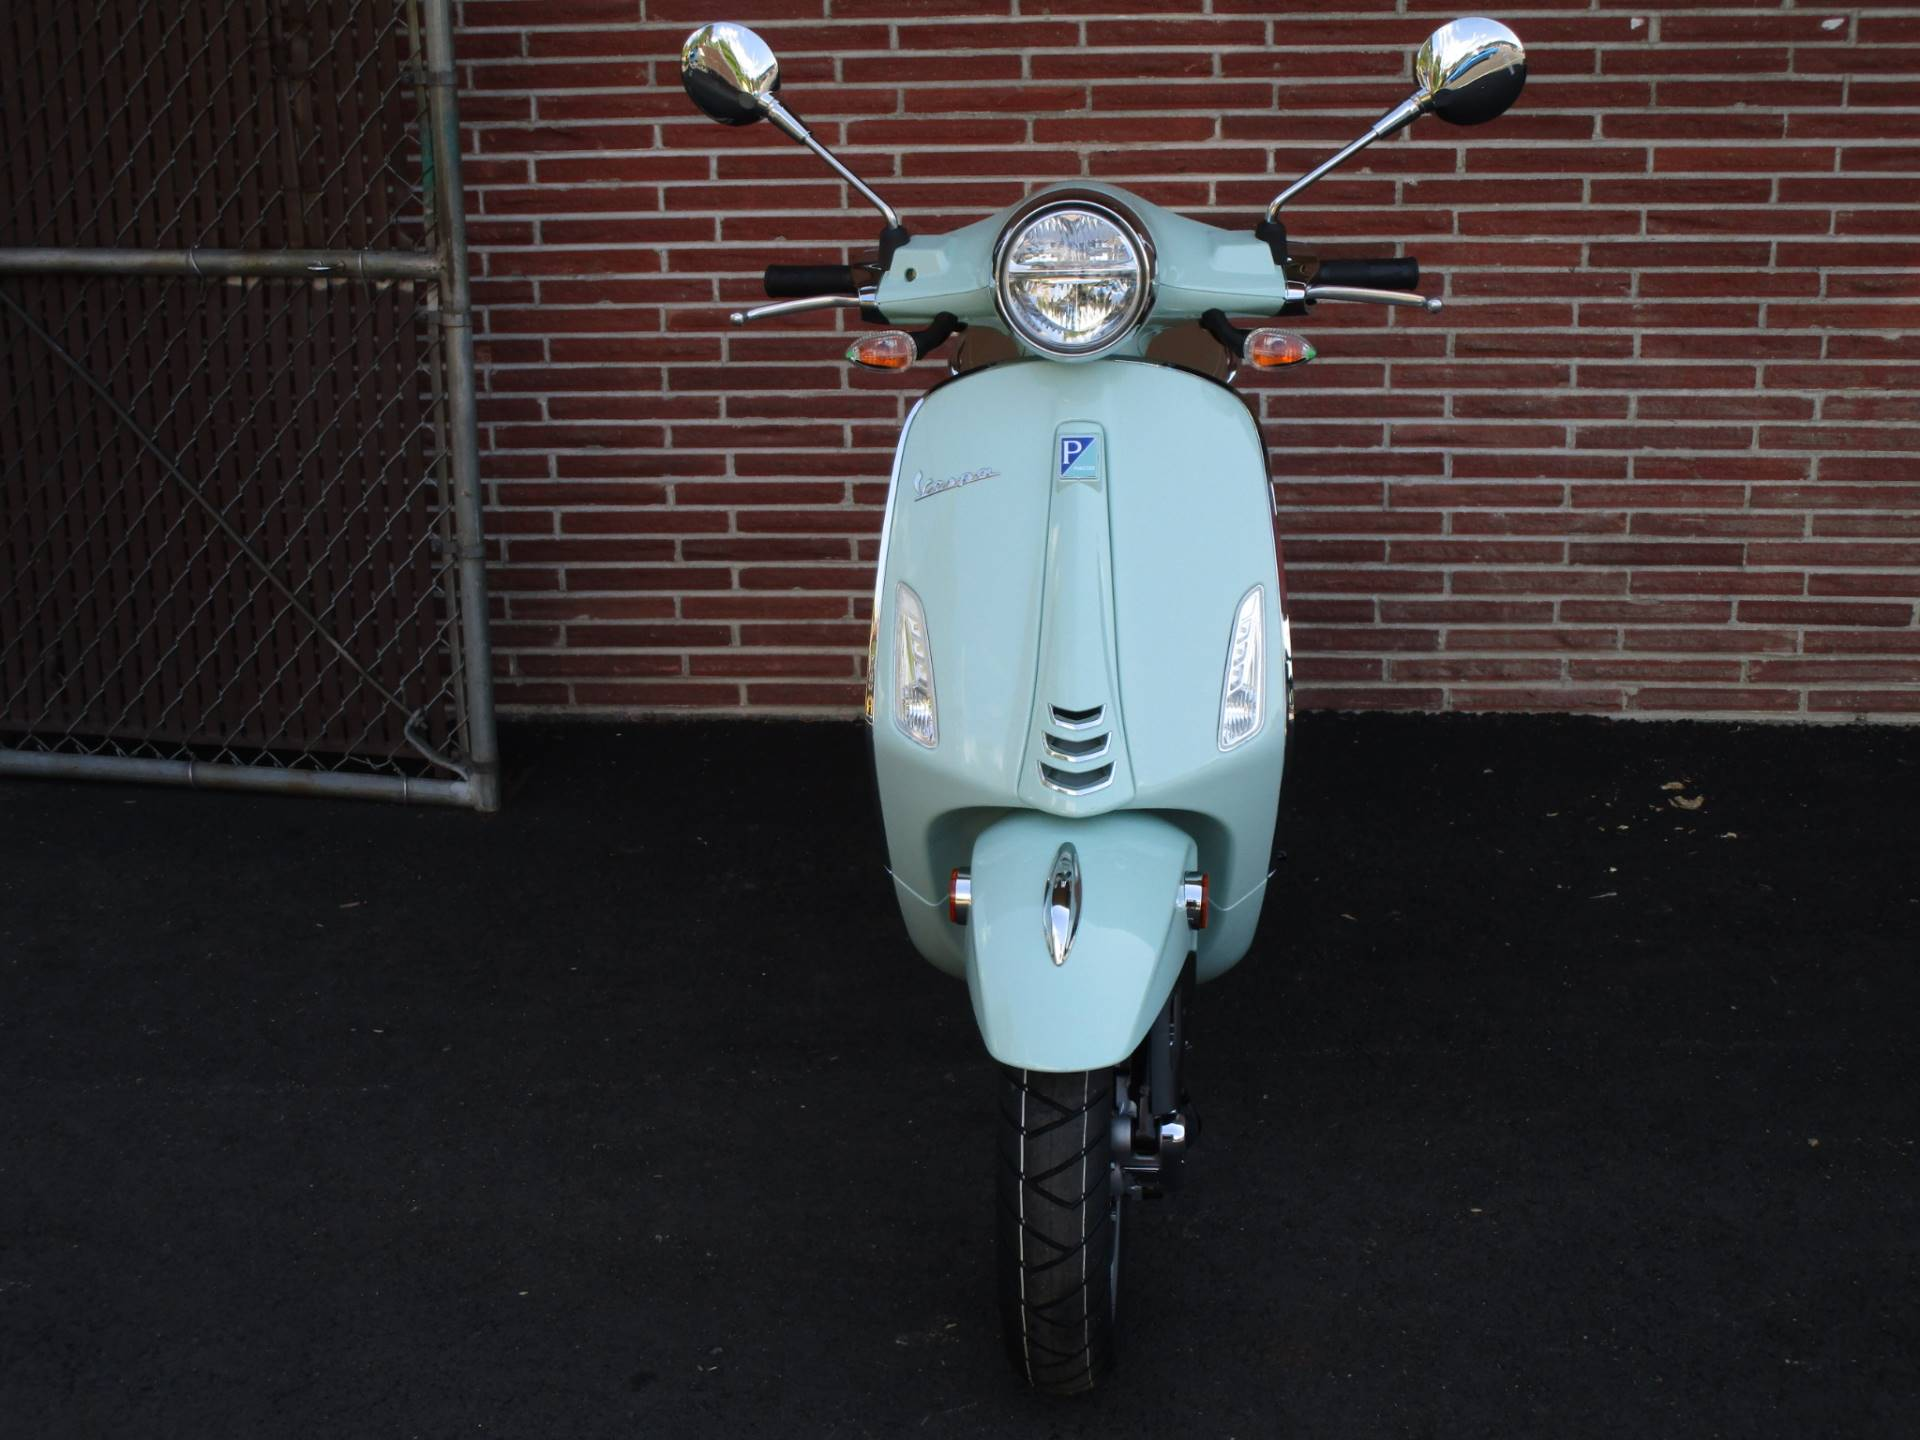 2020 Vespa Primavera 50 in Bellevue, Washington - Photo 3